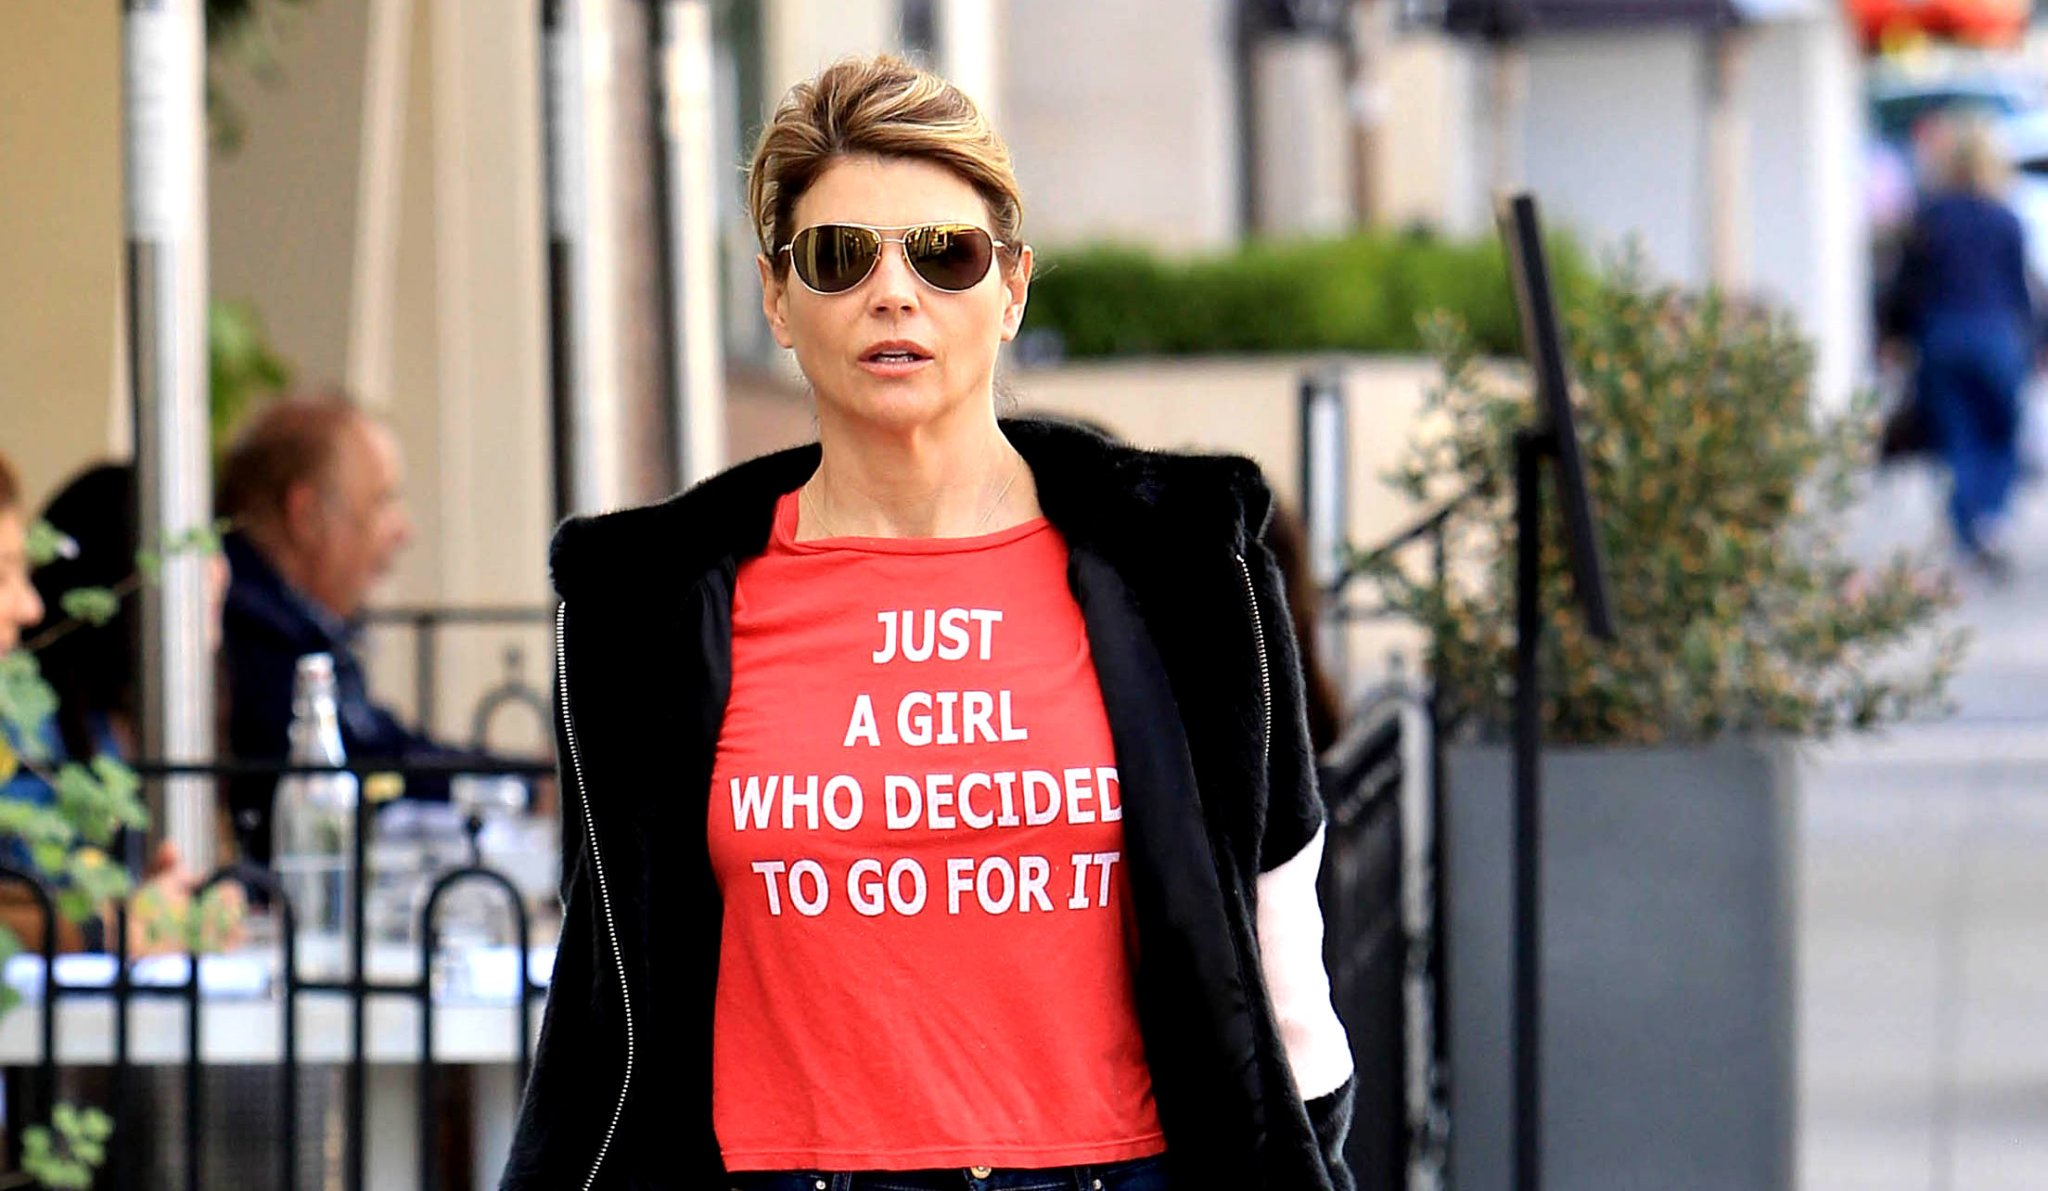 Lori Loughlin Gets Approval To Serve Time In Cushy Prison That Offers Yoga, Pilates, Music Lessons And More! - BroBible